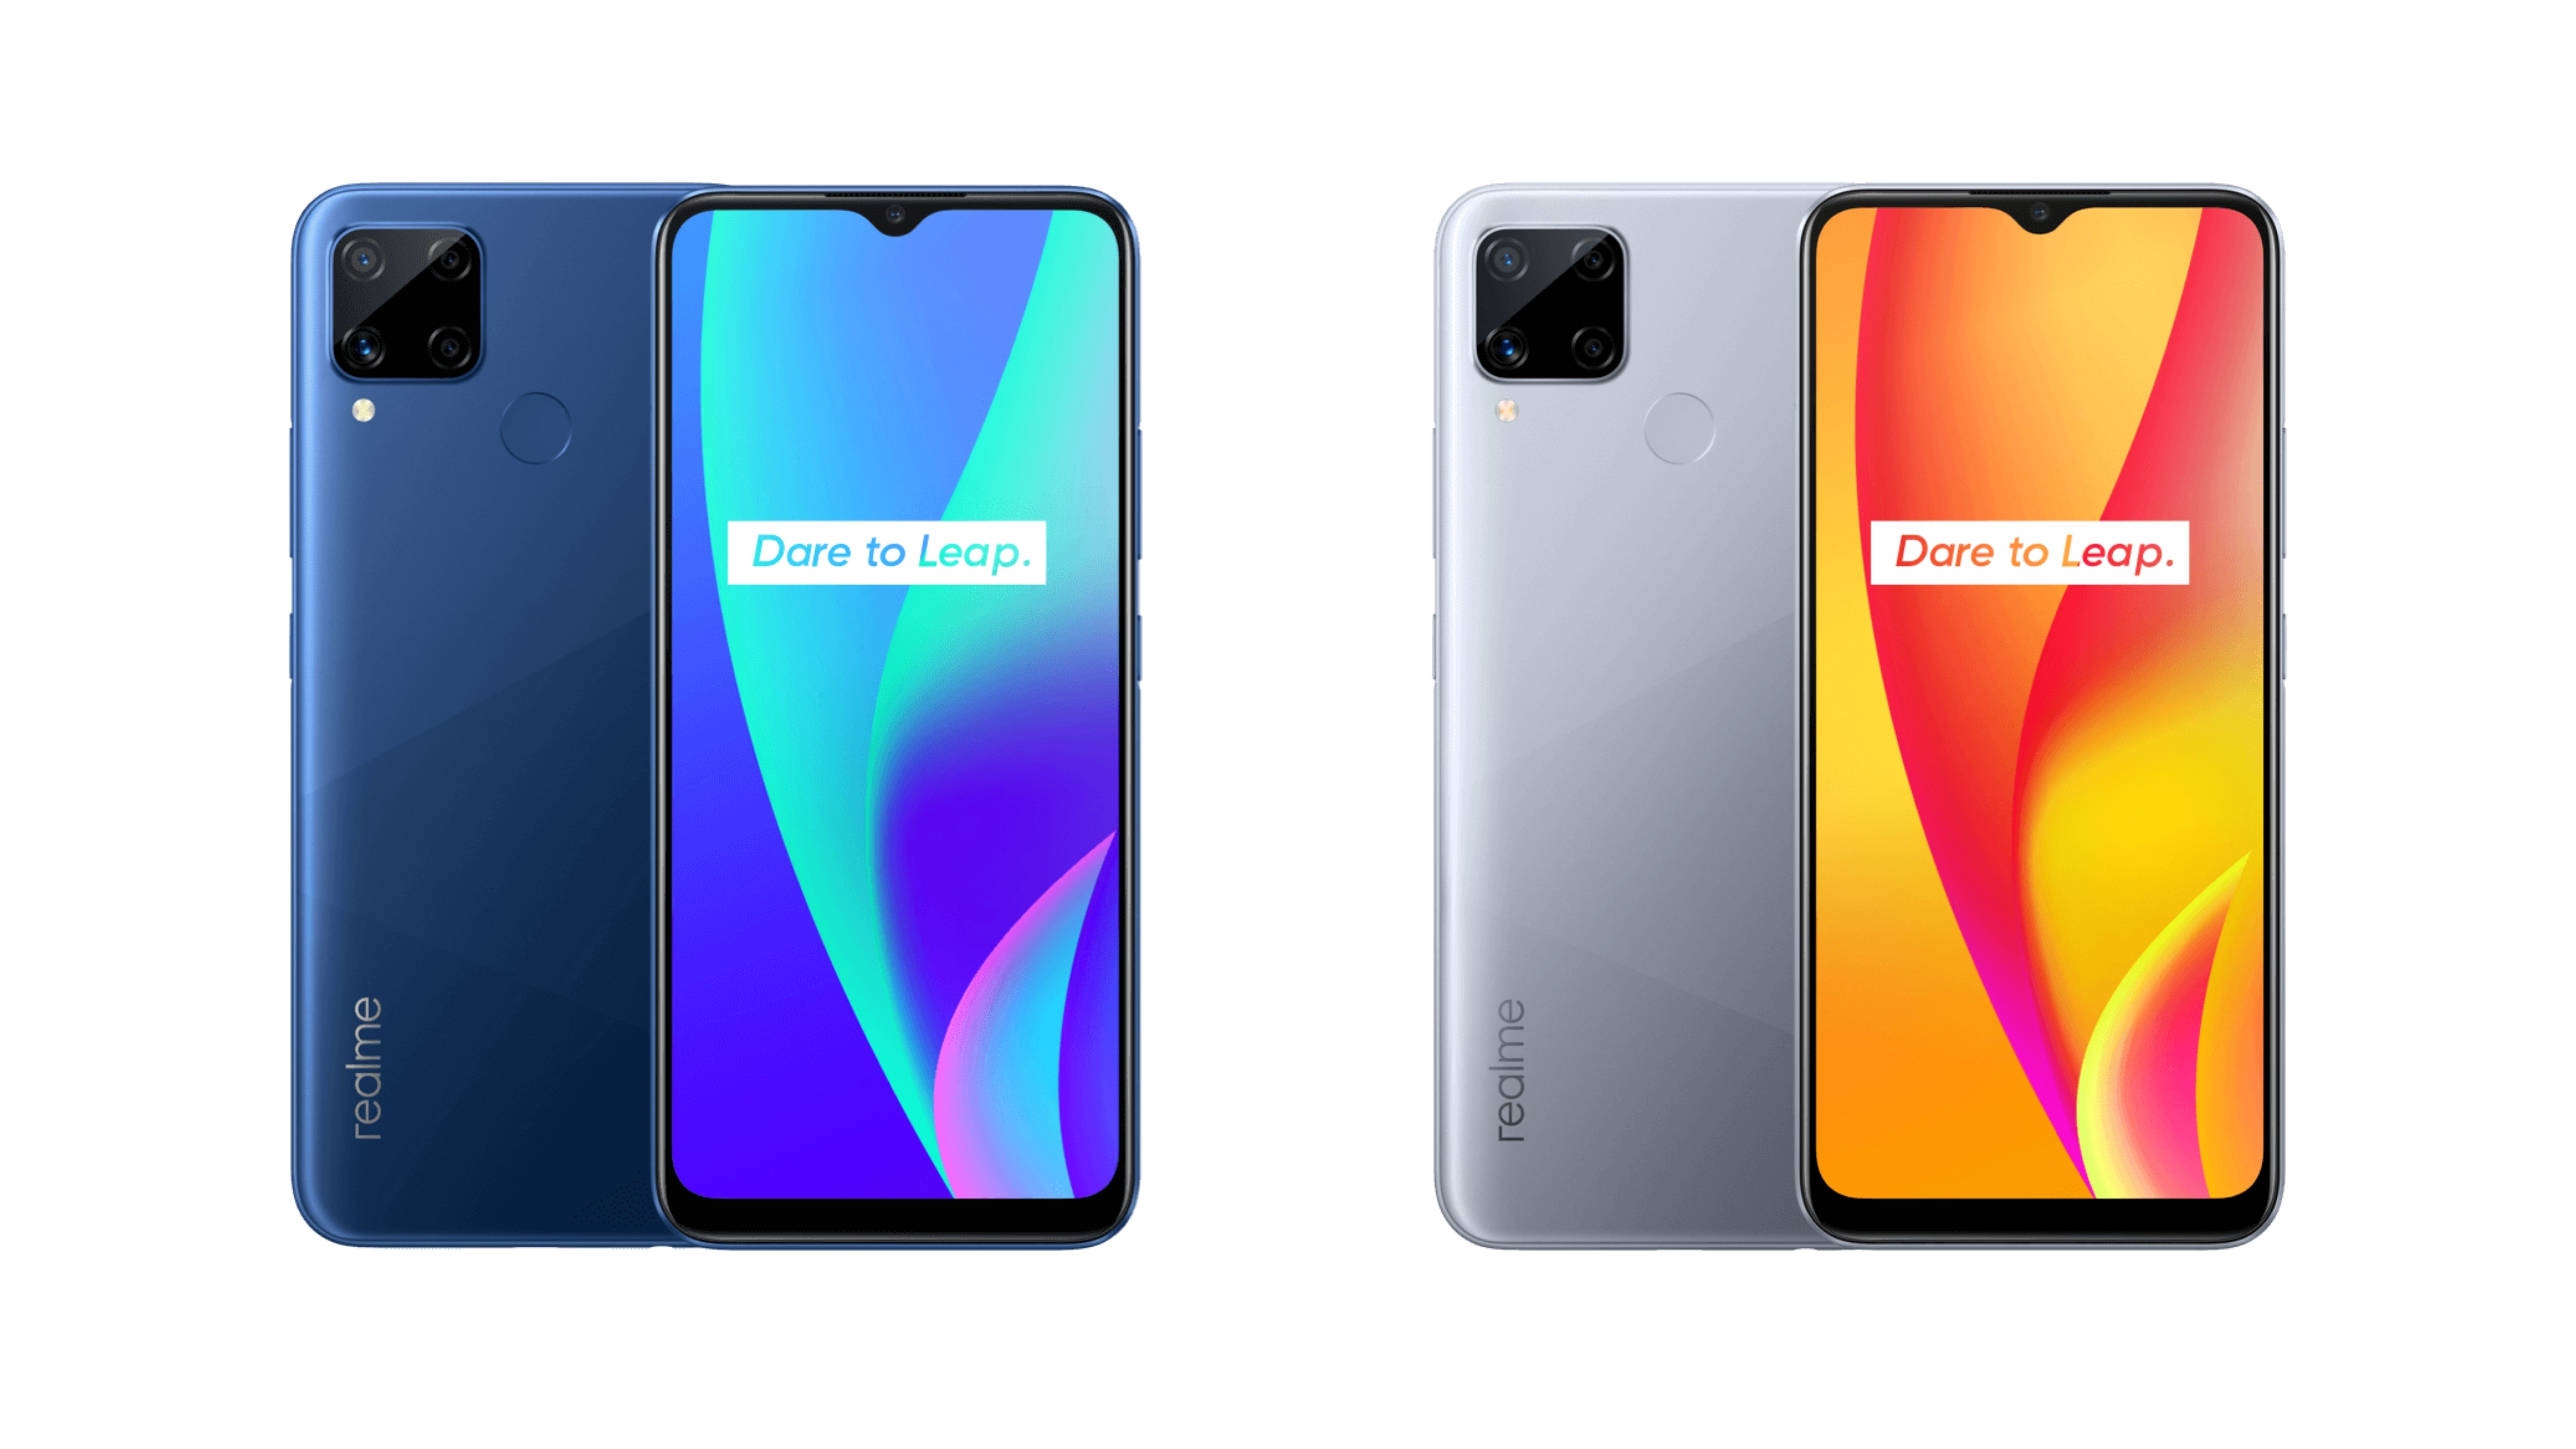 Realme C15 goes on sale in India at 12 noon thumbnail